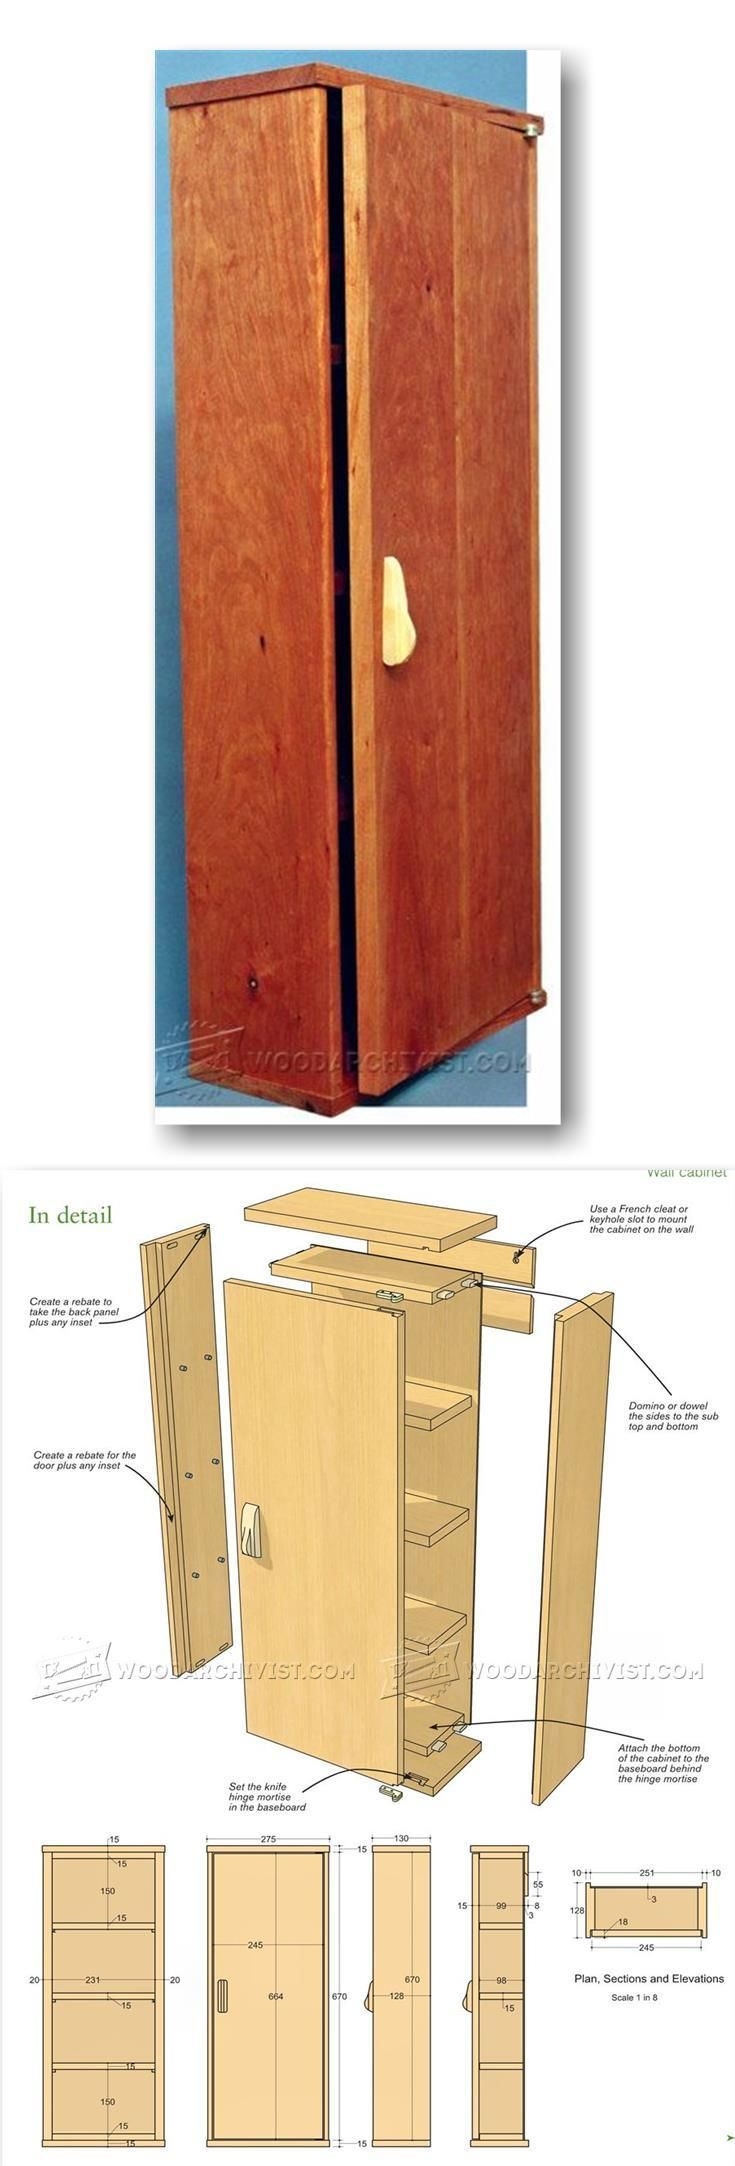 100 kitchen cabinets plans table saw cabinet p